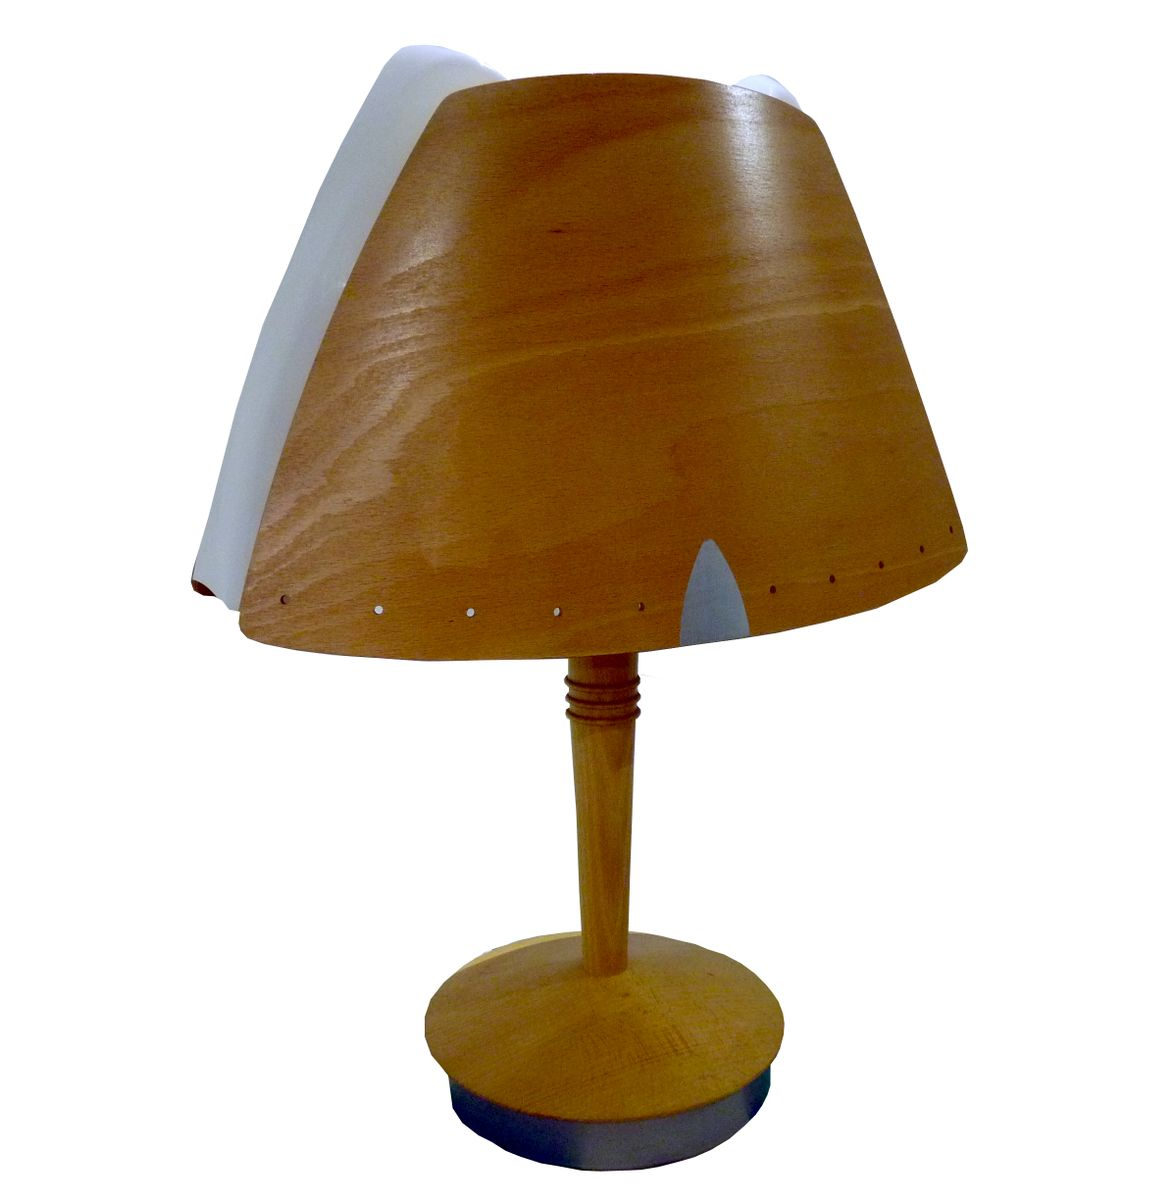 lampe de bureau vintage de lucid 1970s en vente sur pamono. Black Bedroom Furniture Sets. Home Design Ideas